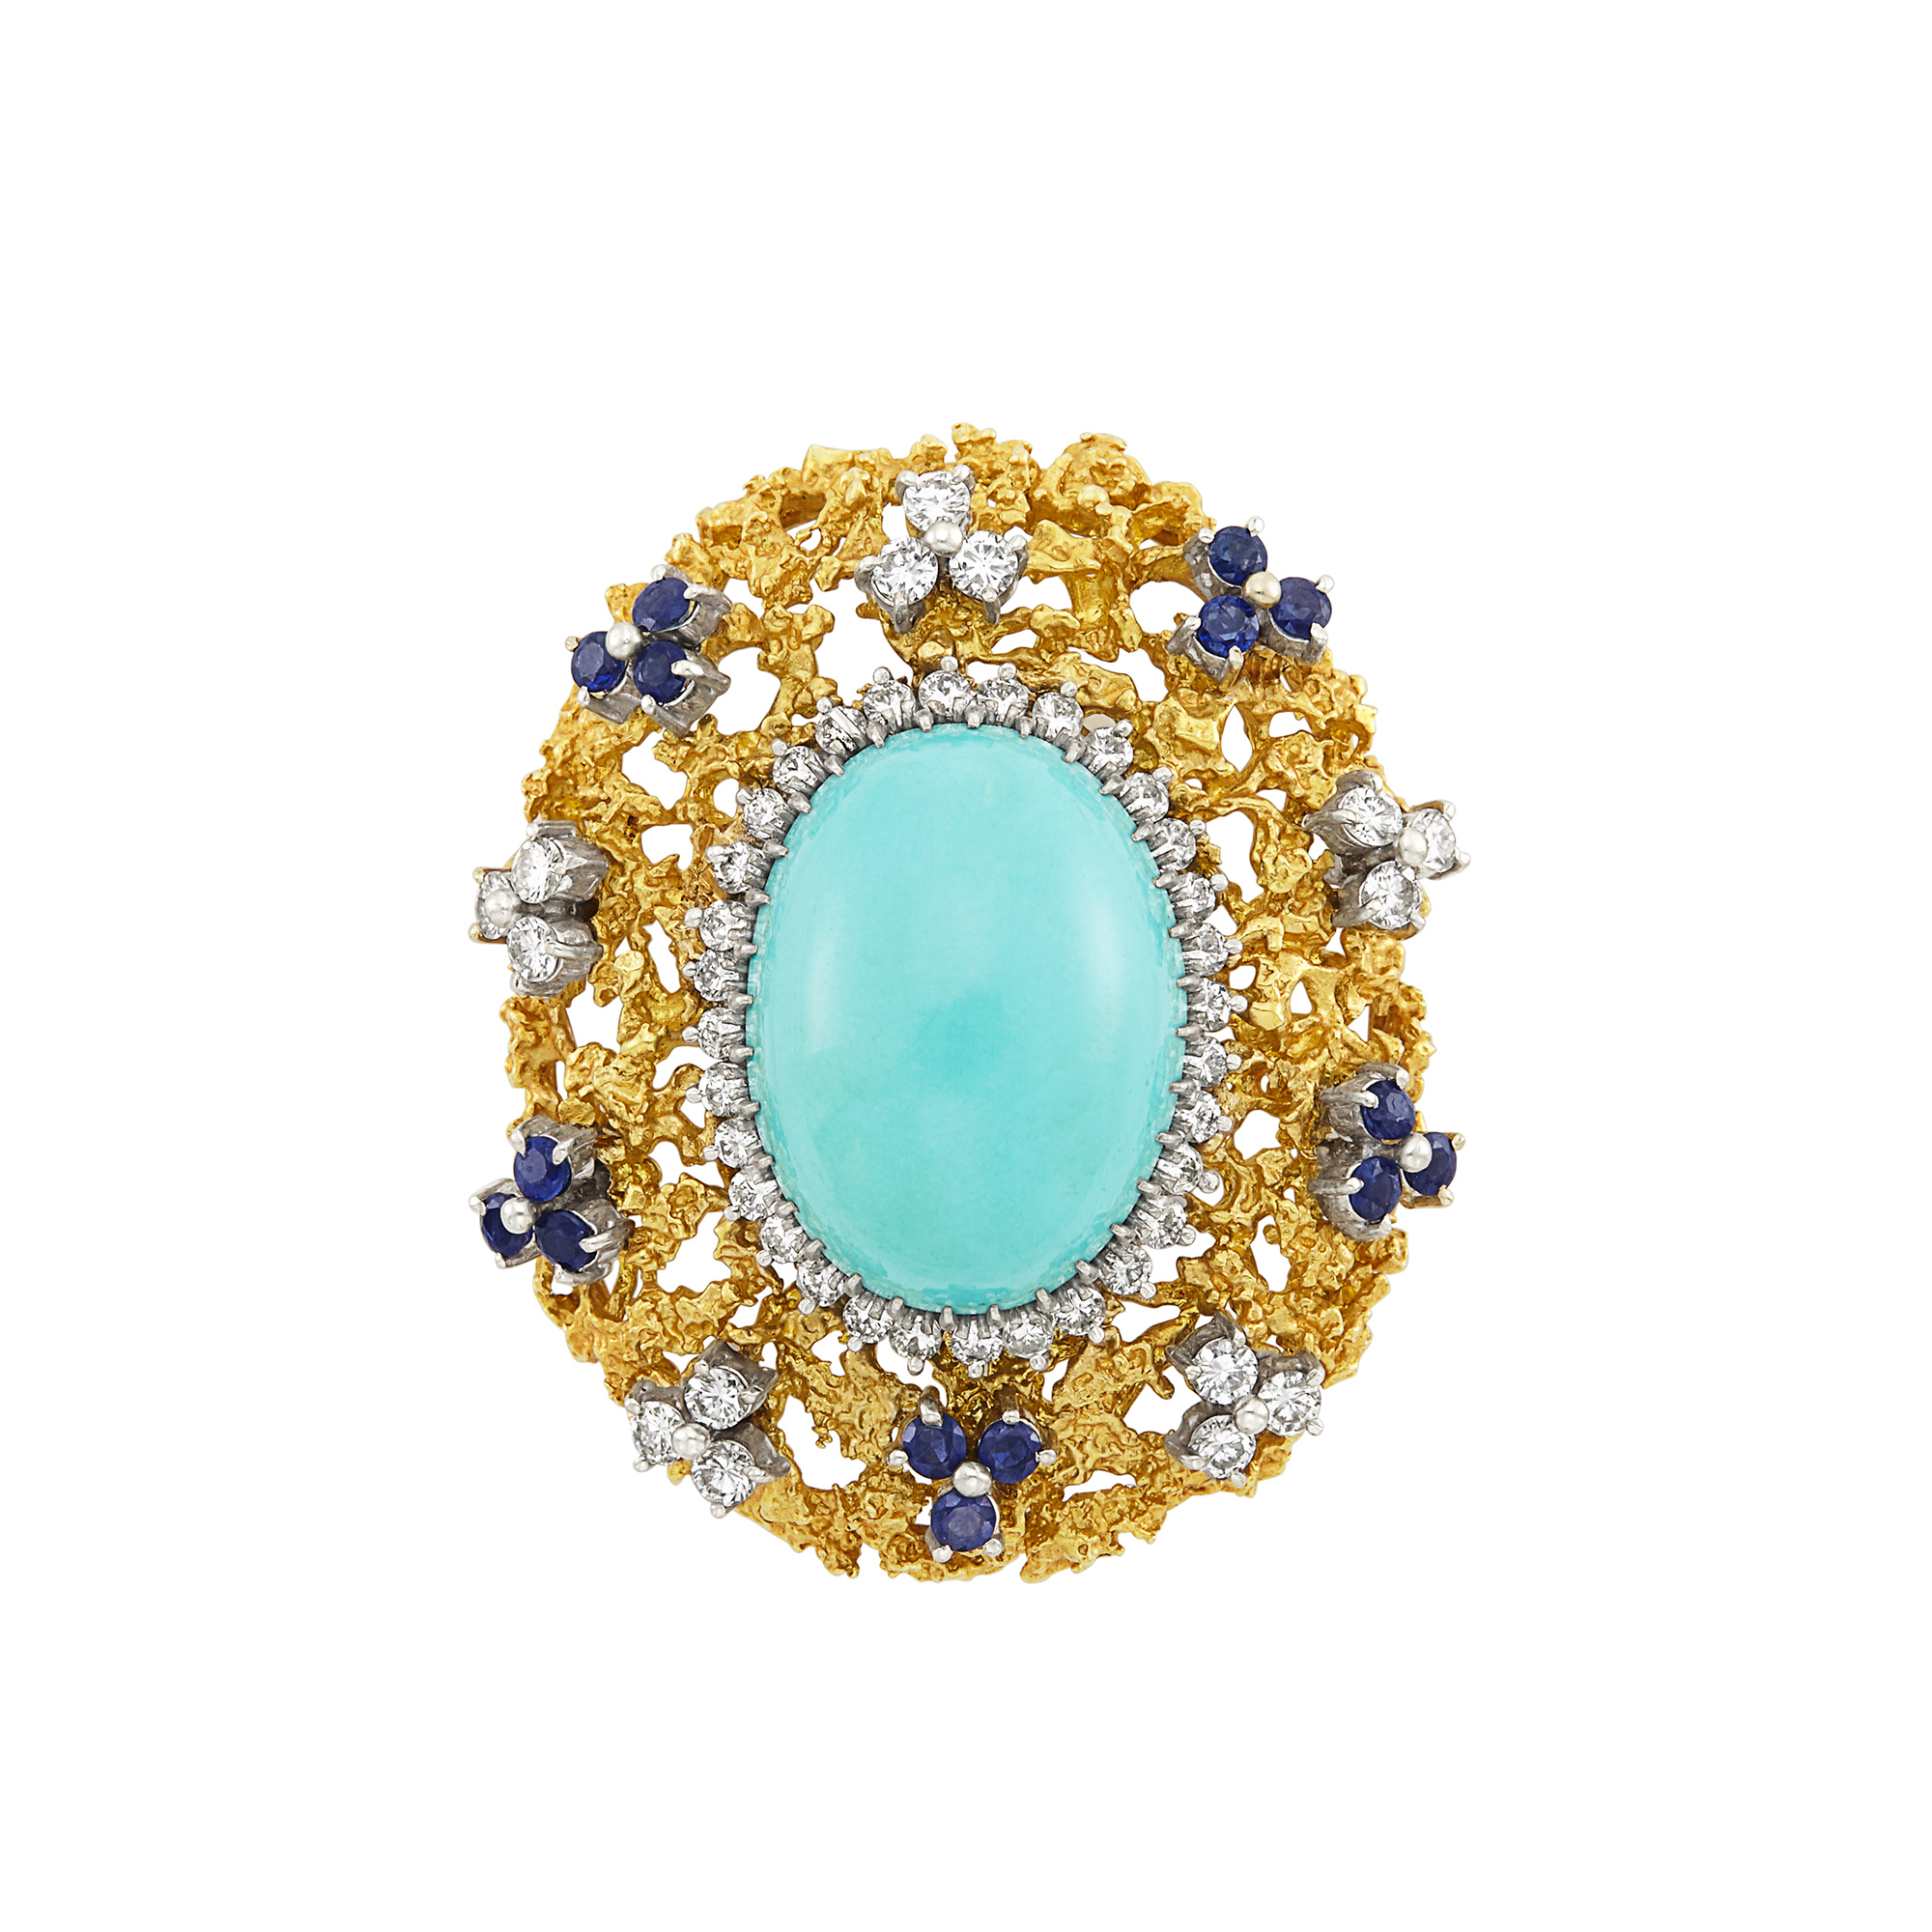 Lot image - Two-Color Gold, Turquoise, Diamond and Sapphire Brooch